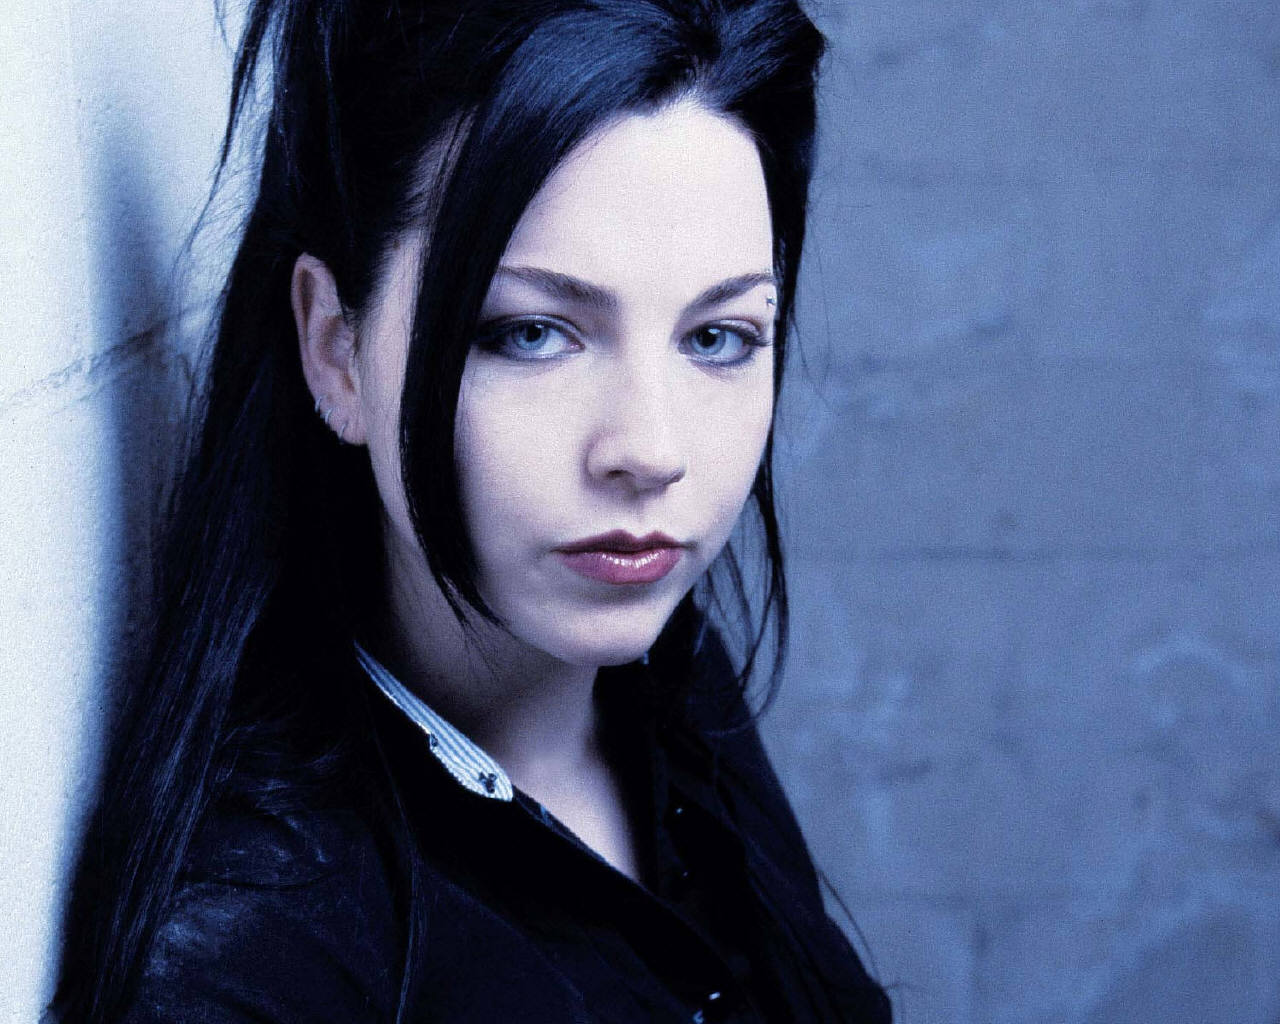 Evanescence images Amy Lee wallpaper photos 383649 1280x1024